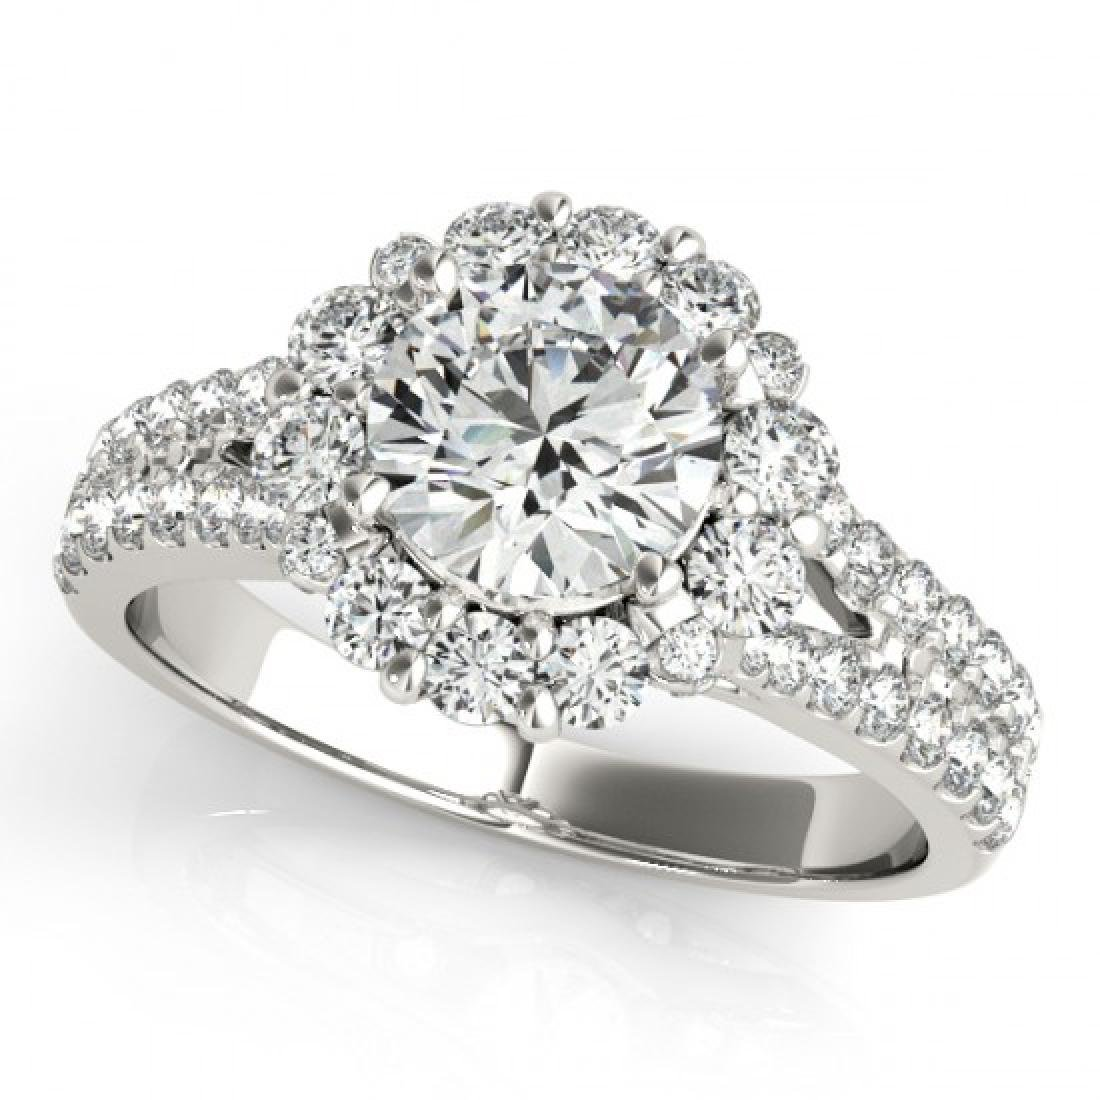 1.76 CTW Certified VS/SI Diamond Solitaire Halo Ring